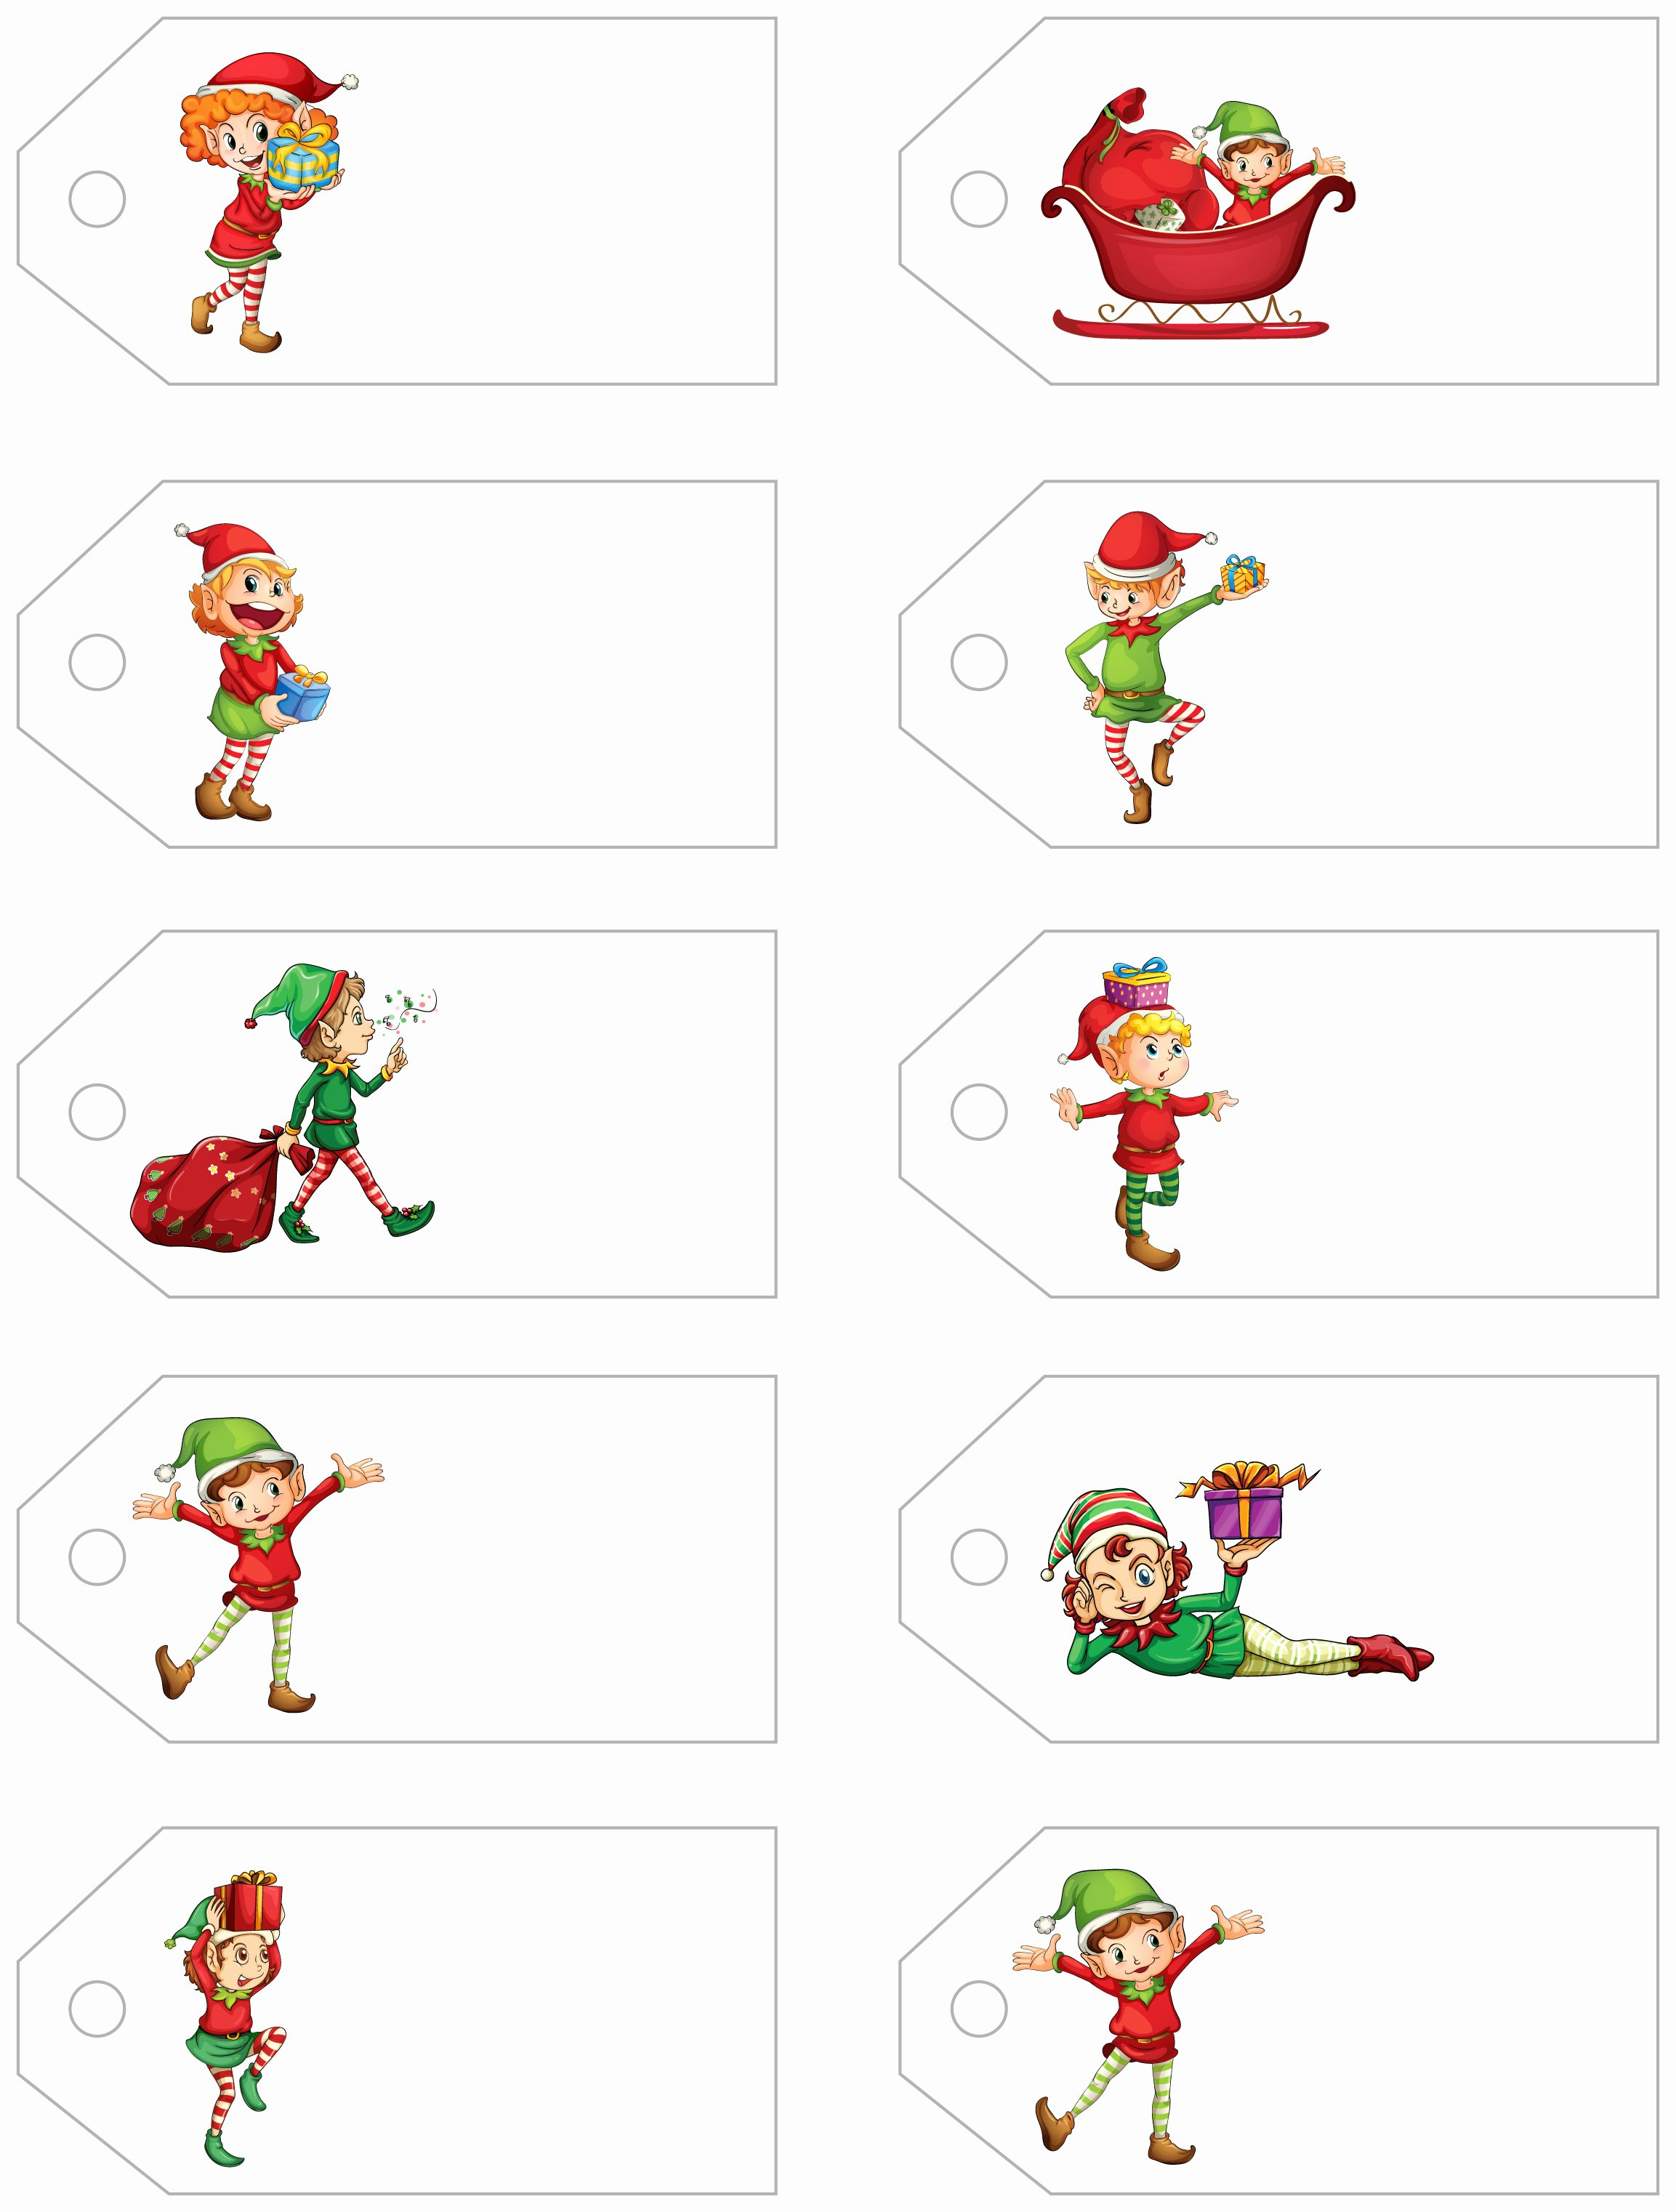 Printable Gift Tag Template New Santa S Little T to You Free Printable Gift Tags and